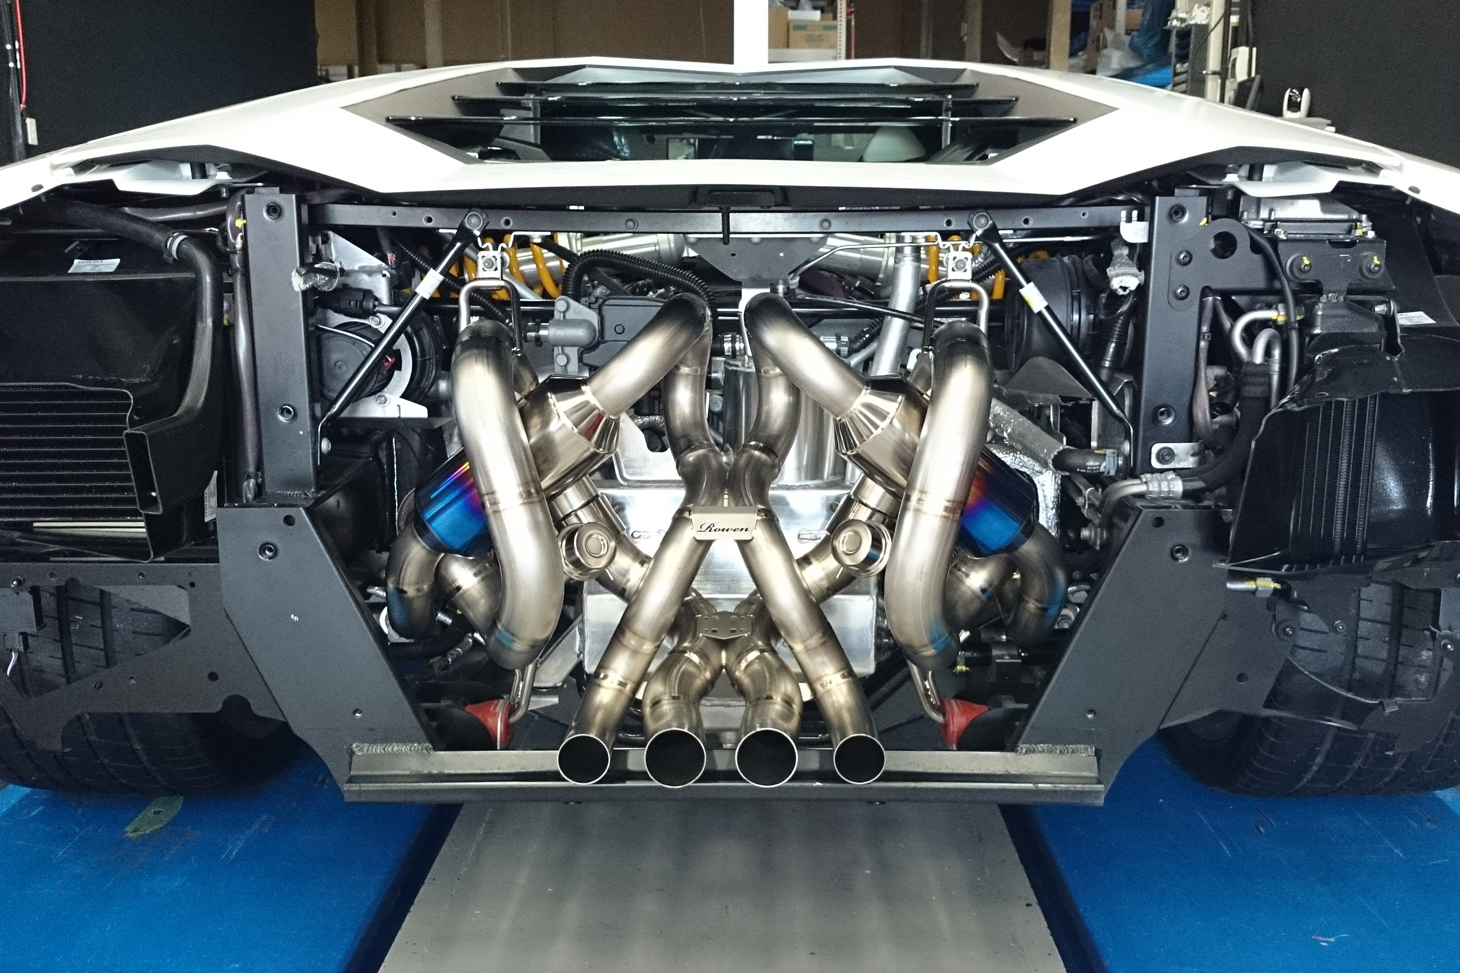 Japanese Custom Aventador Exhaust Is Complicated Blue And